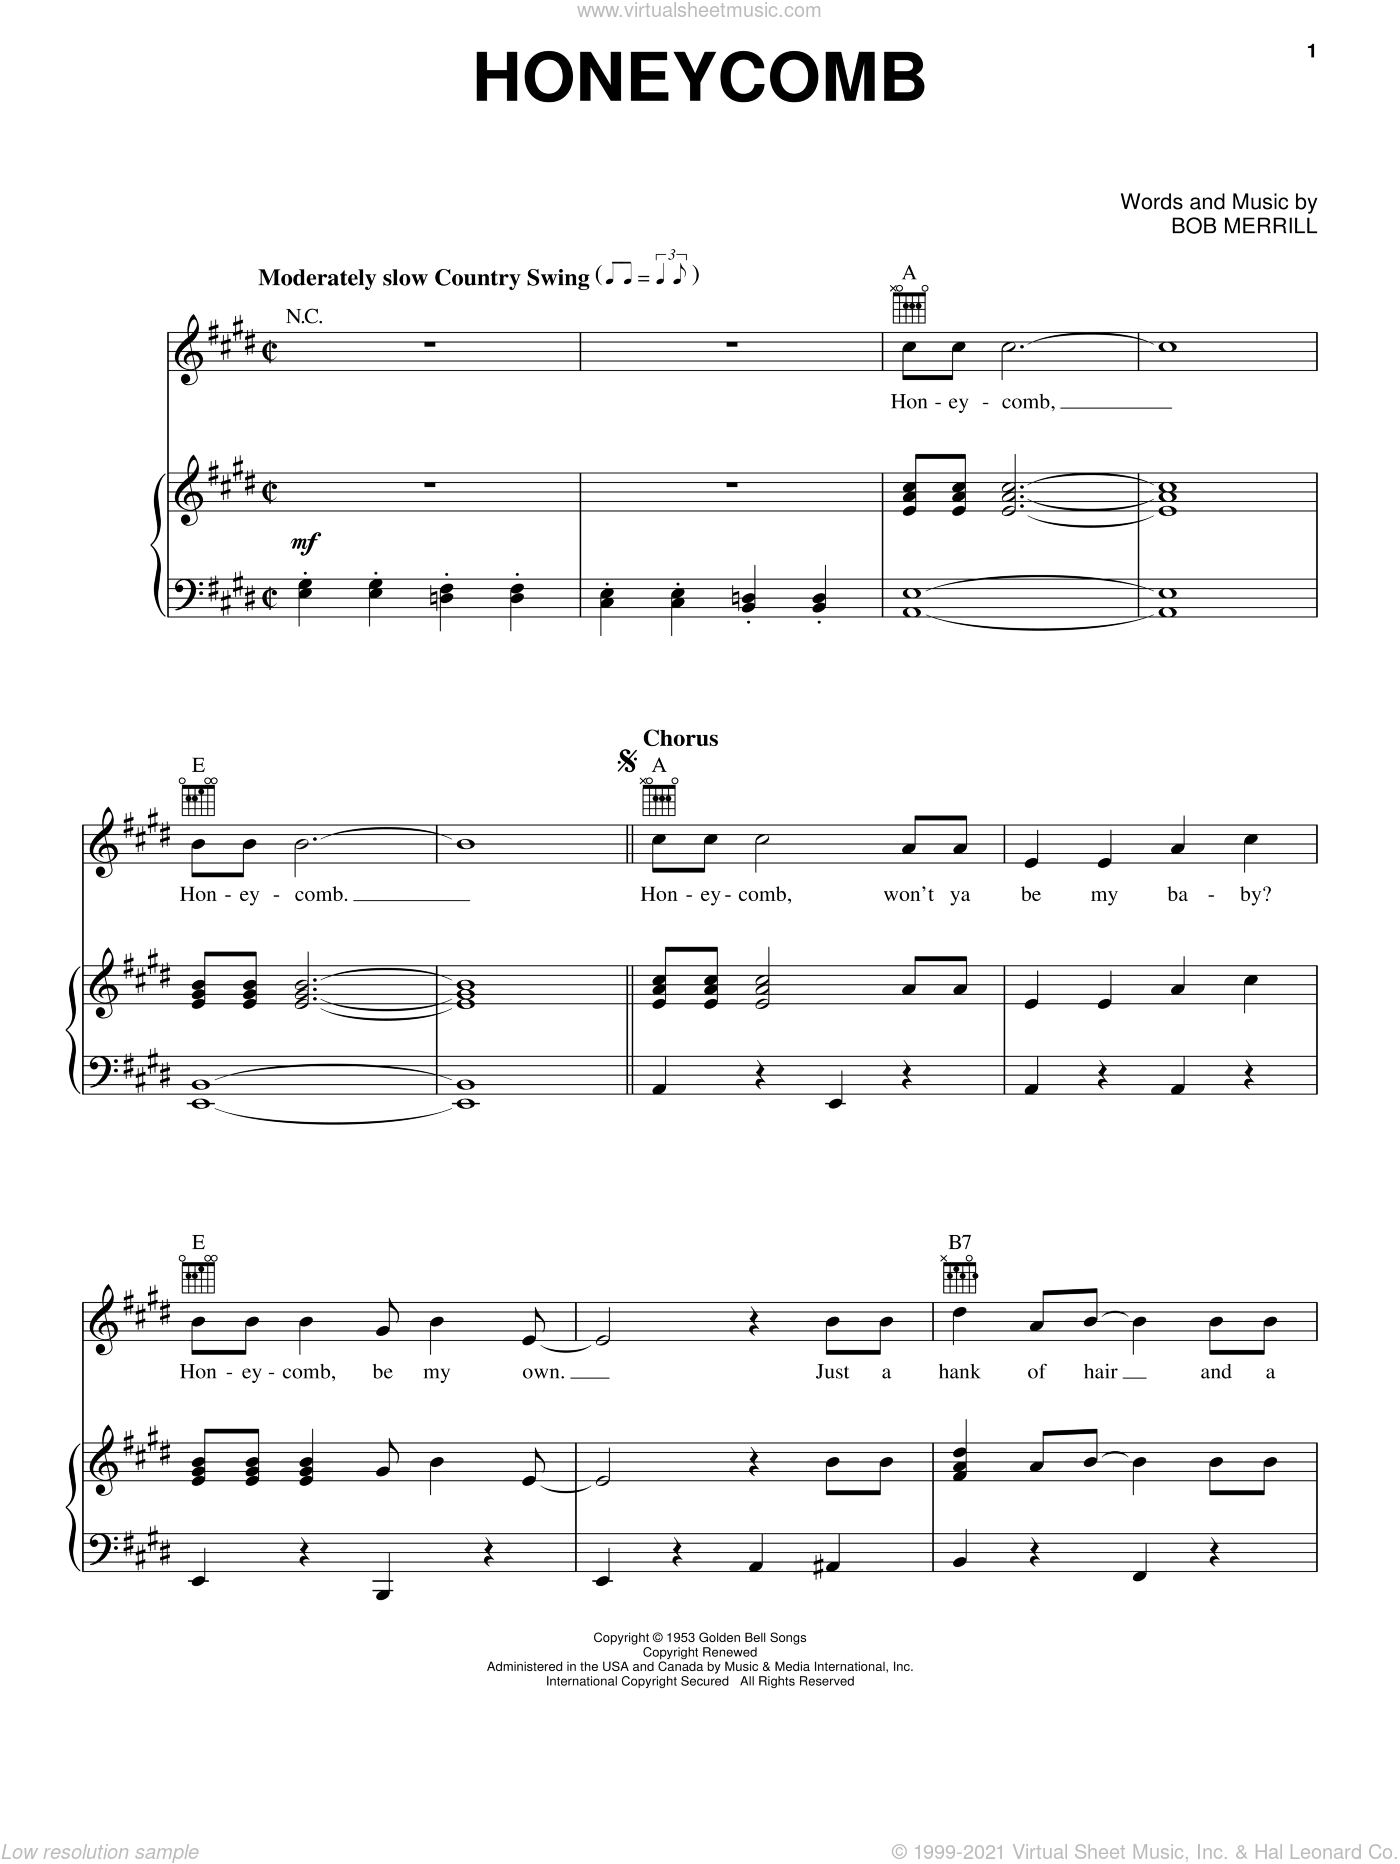 Honeycomb sheet music for voice, piano or guitar by Bob Merrill